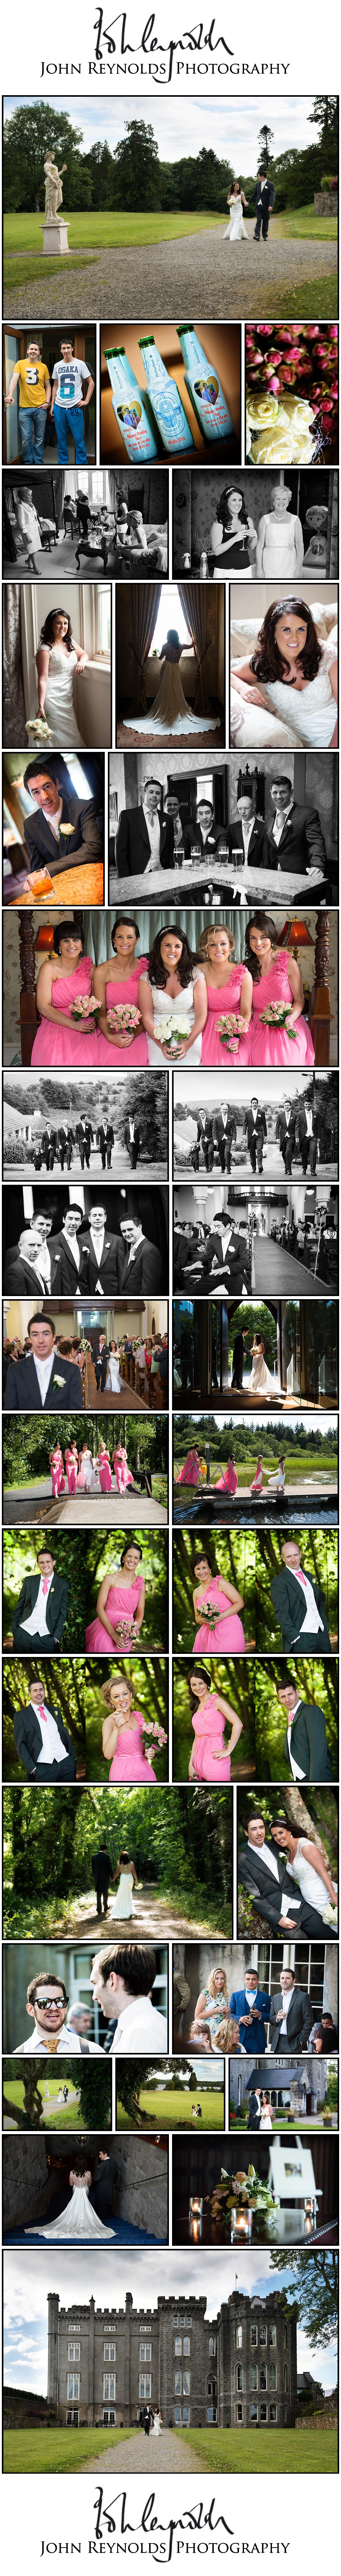 Blog Collage-Orla & Paul1